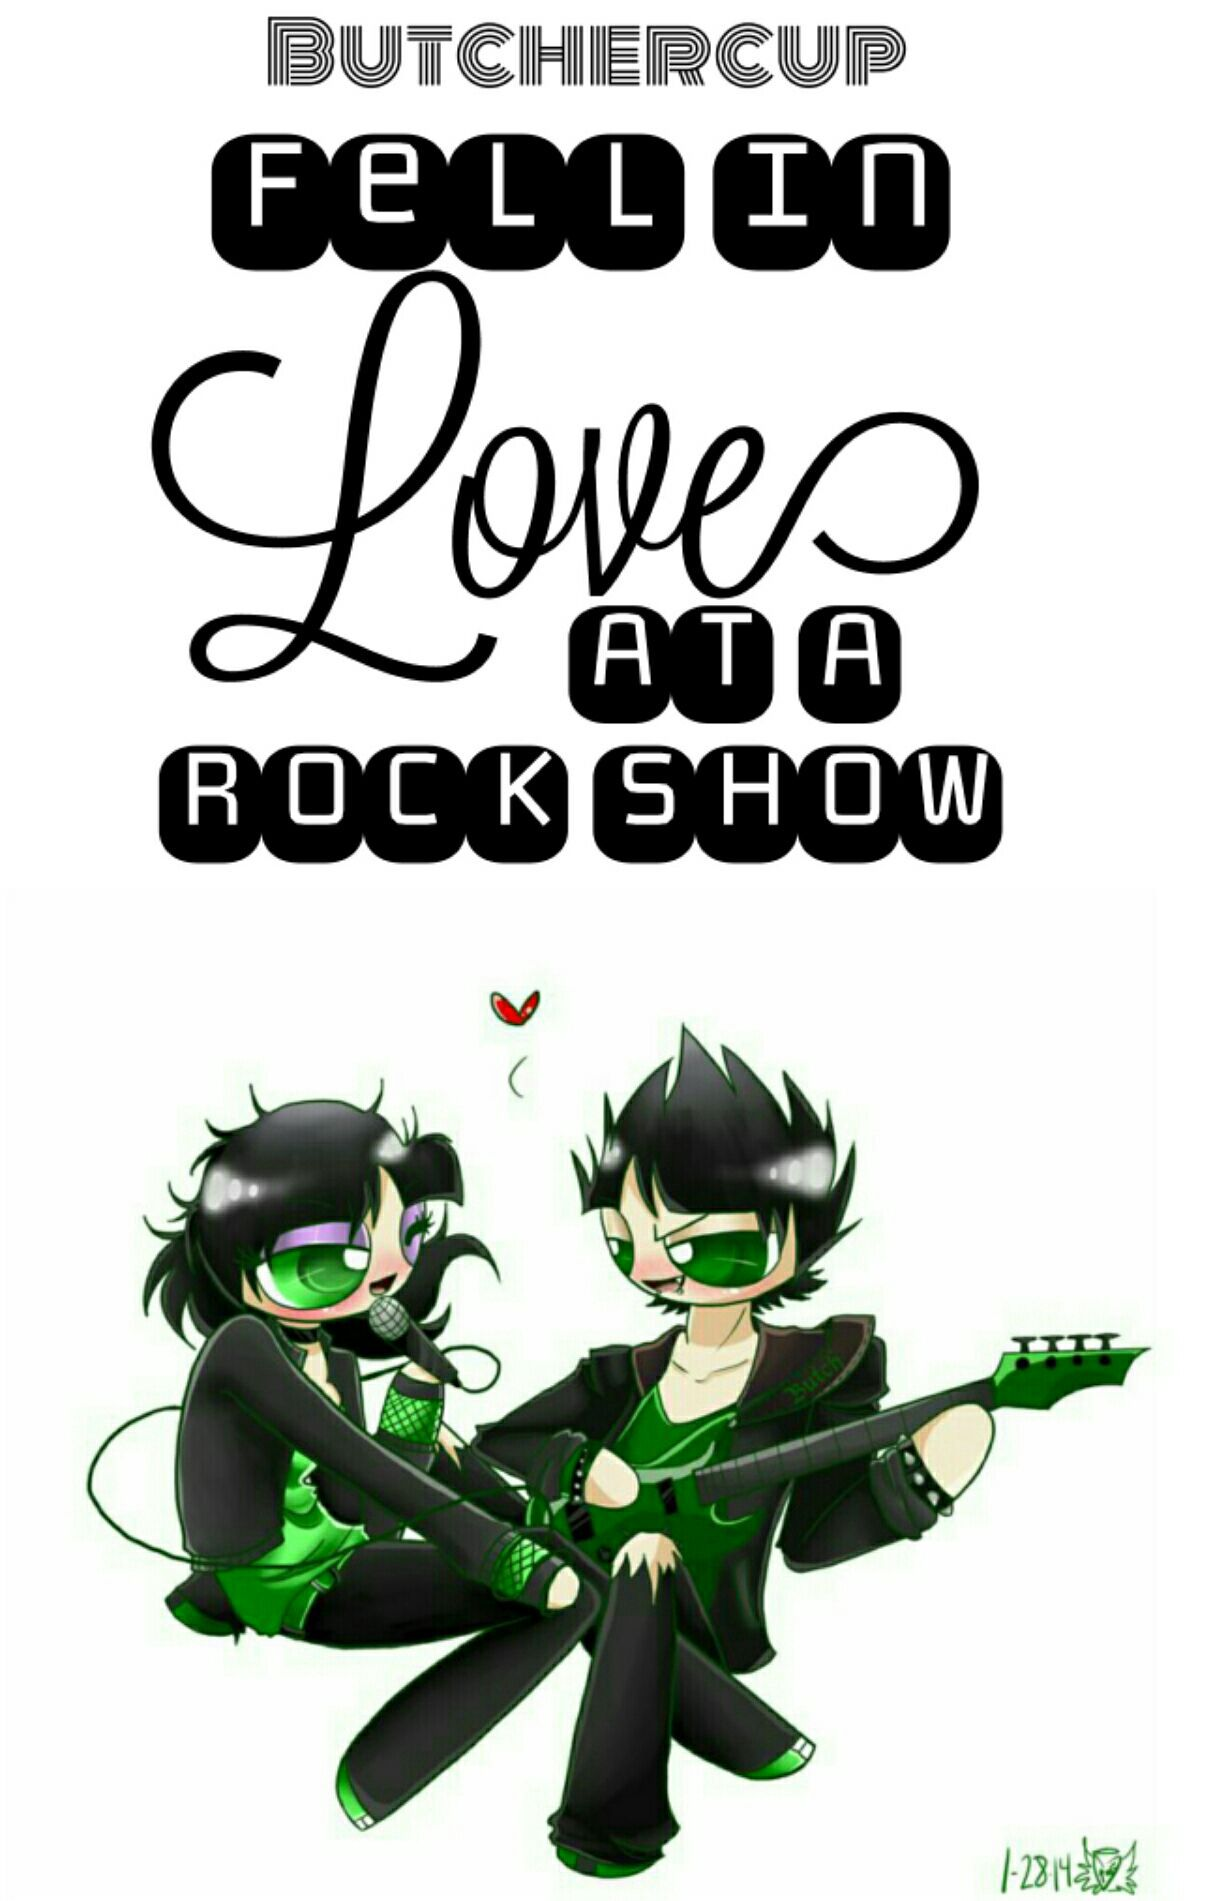 PPGXRRB One Shots - Fell in Love at a Rock Show - Wattpad